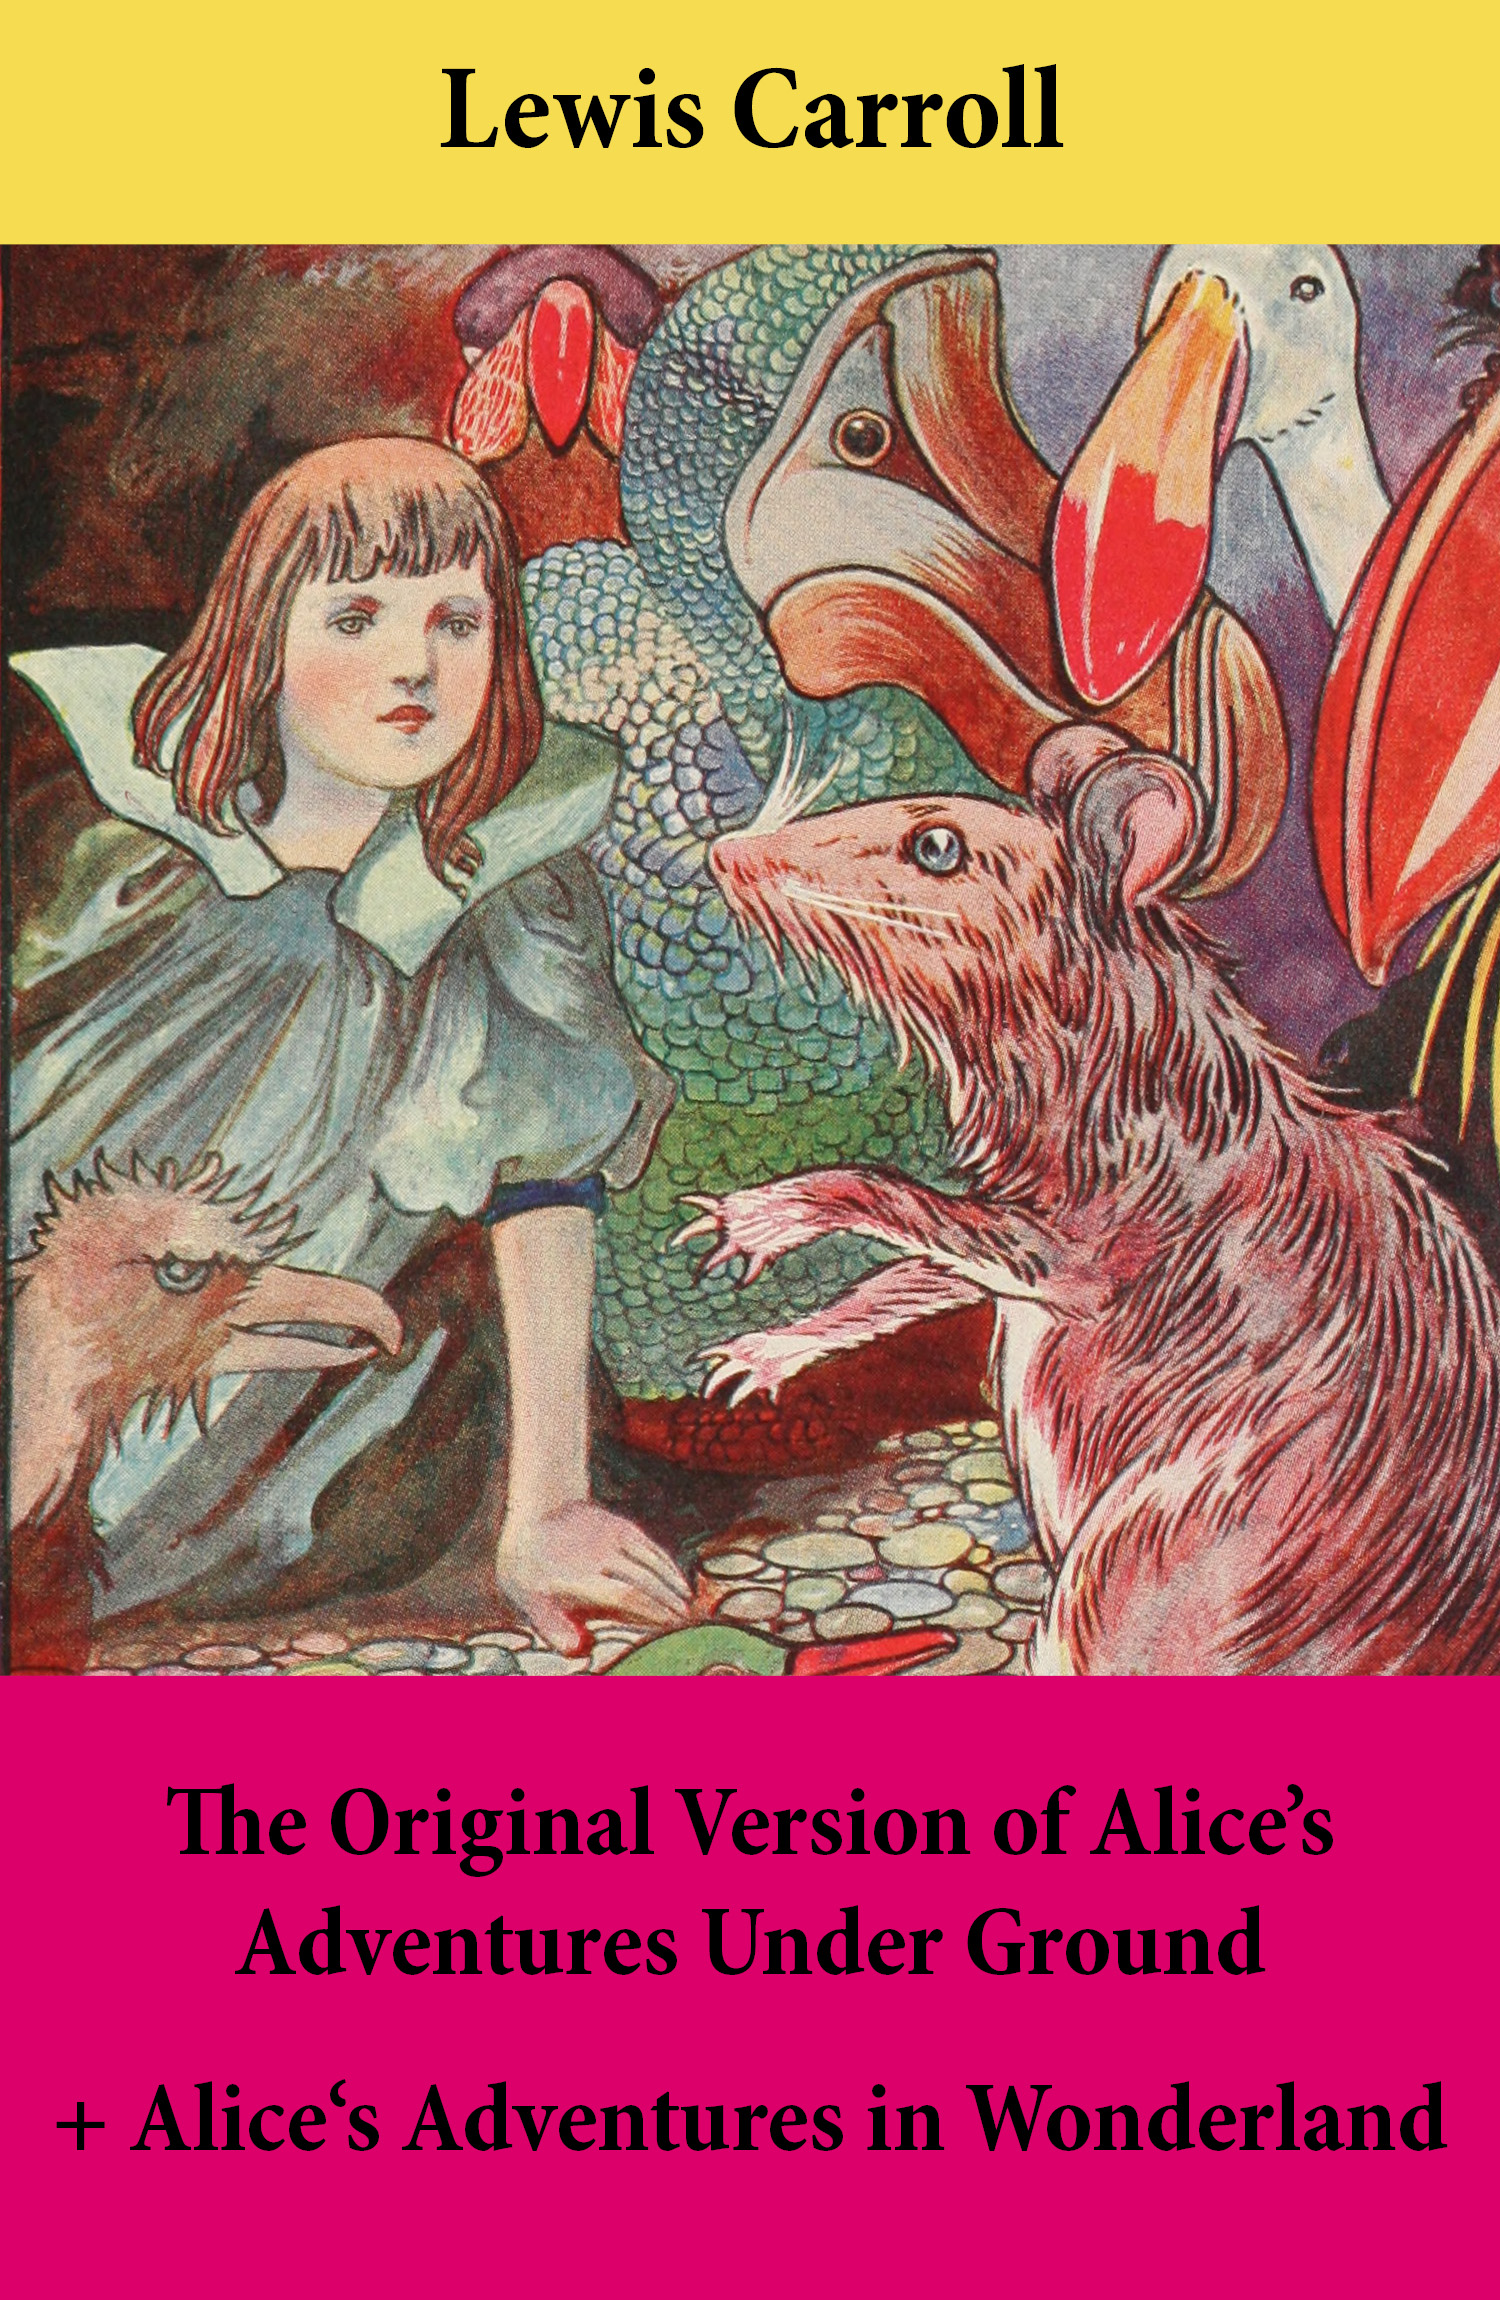 The Original Version of Alice's Adventures Under Ground + Alice's Adventures in Wonderland